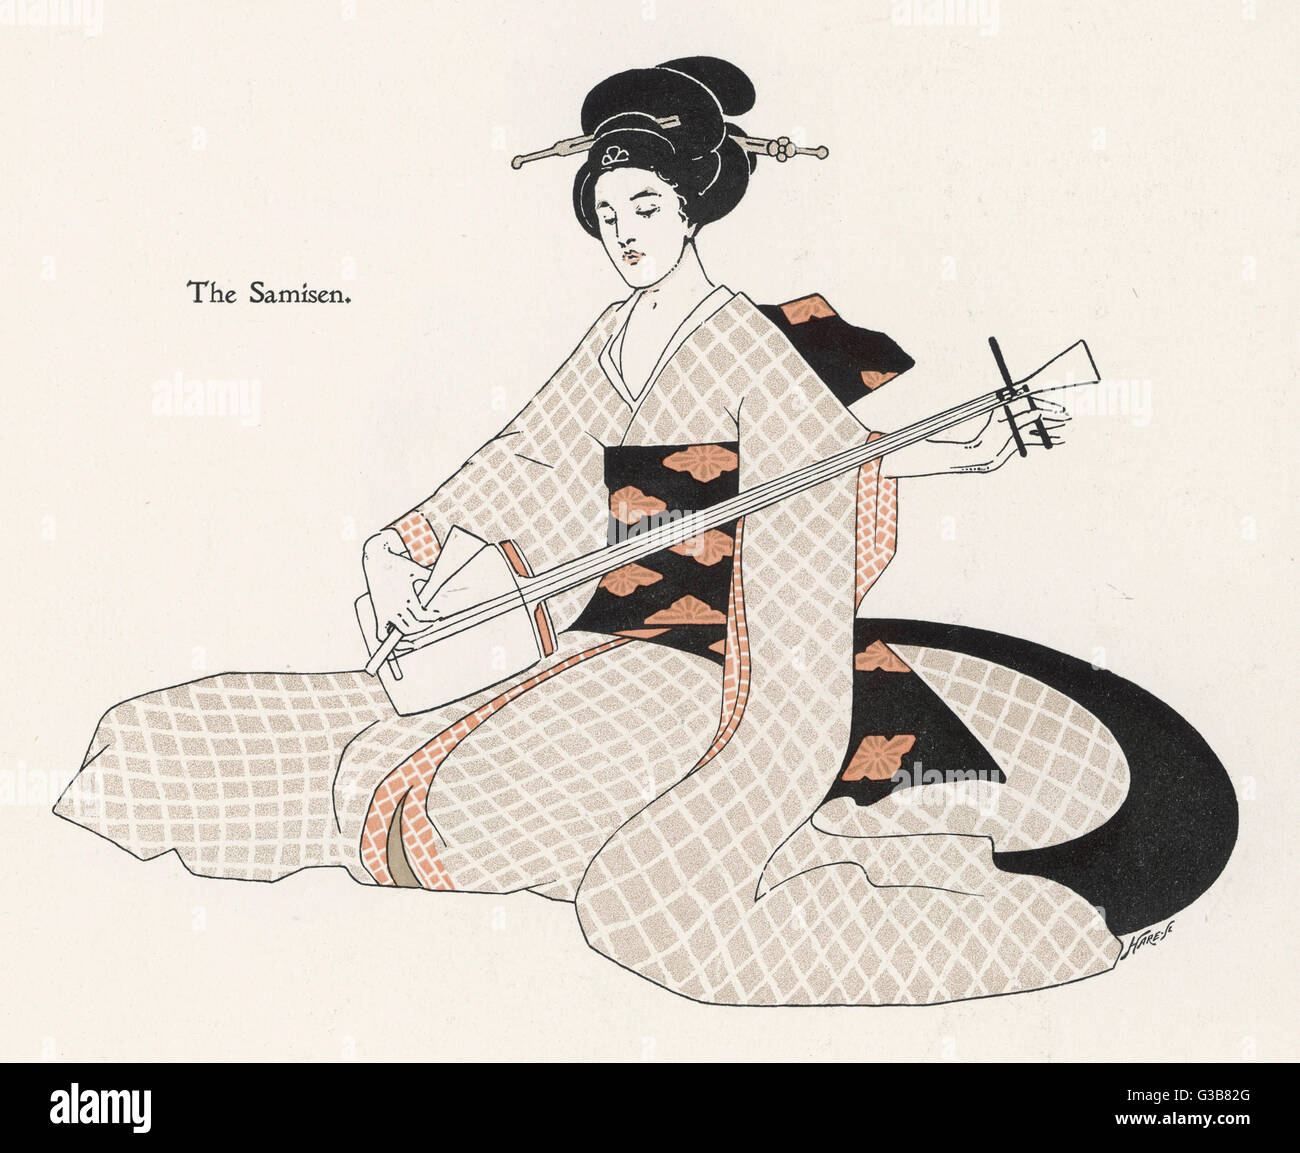 A Japanese musician plays the  SAMISEN, a stringed instrument  like a guitar, plucked with  the fingers or a plectrum. - Stock Image